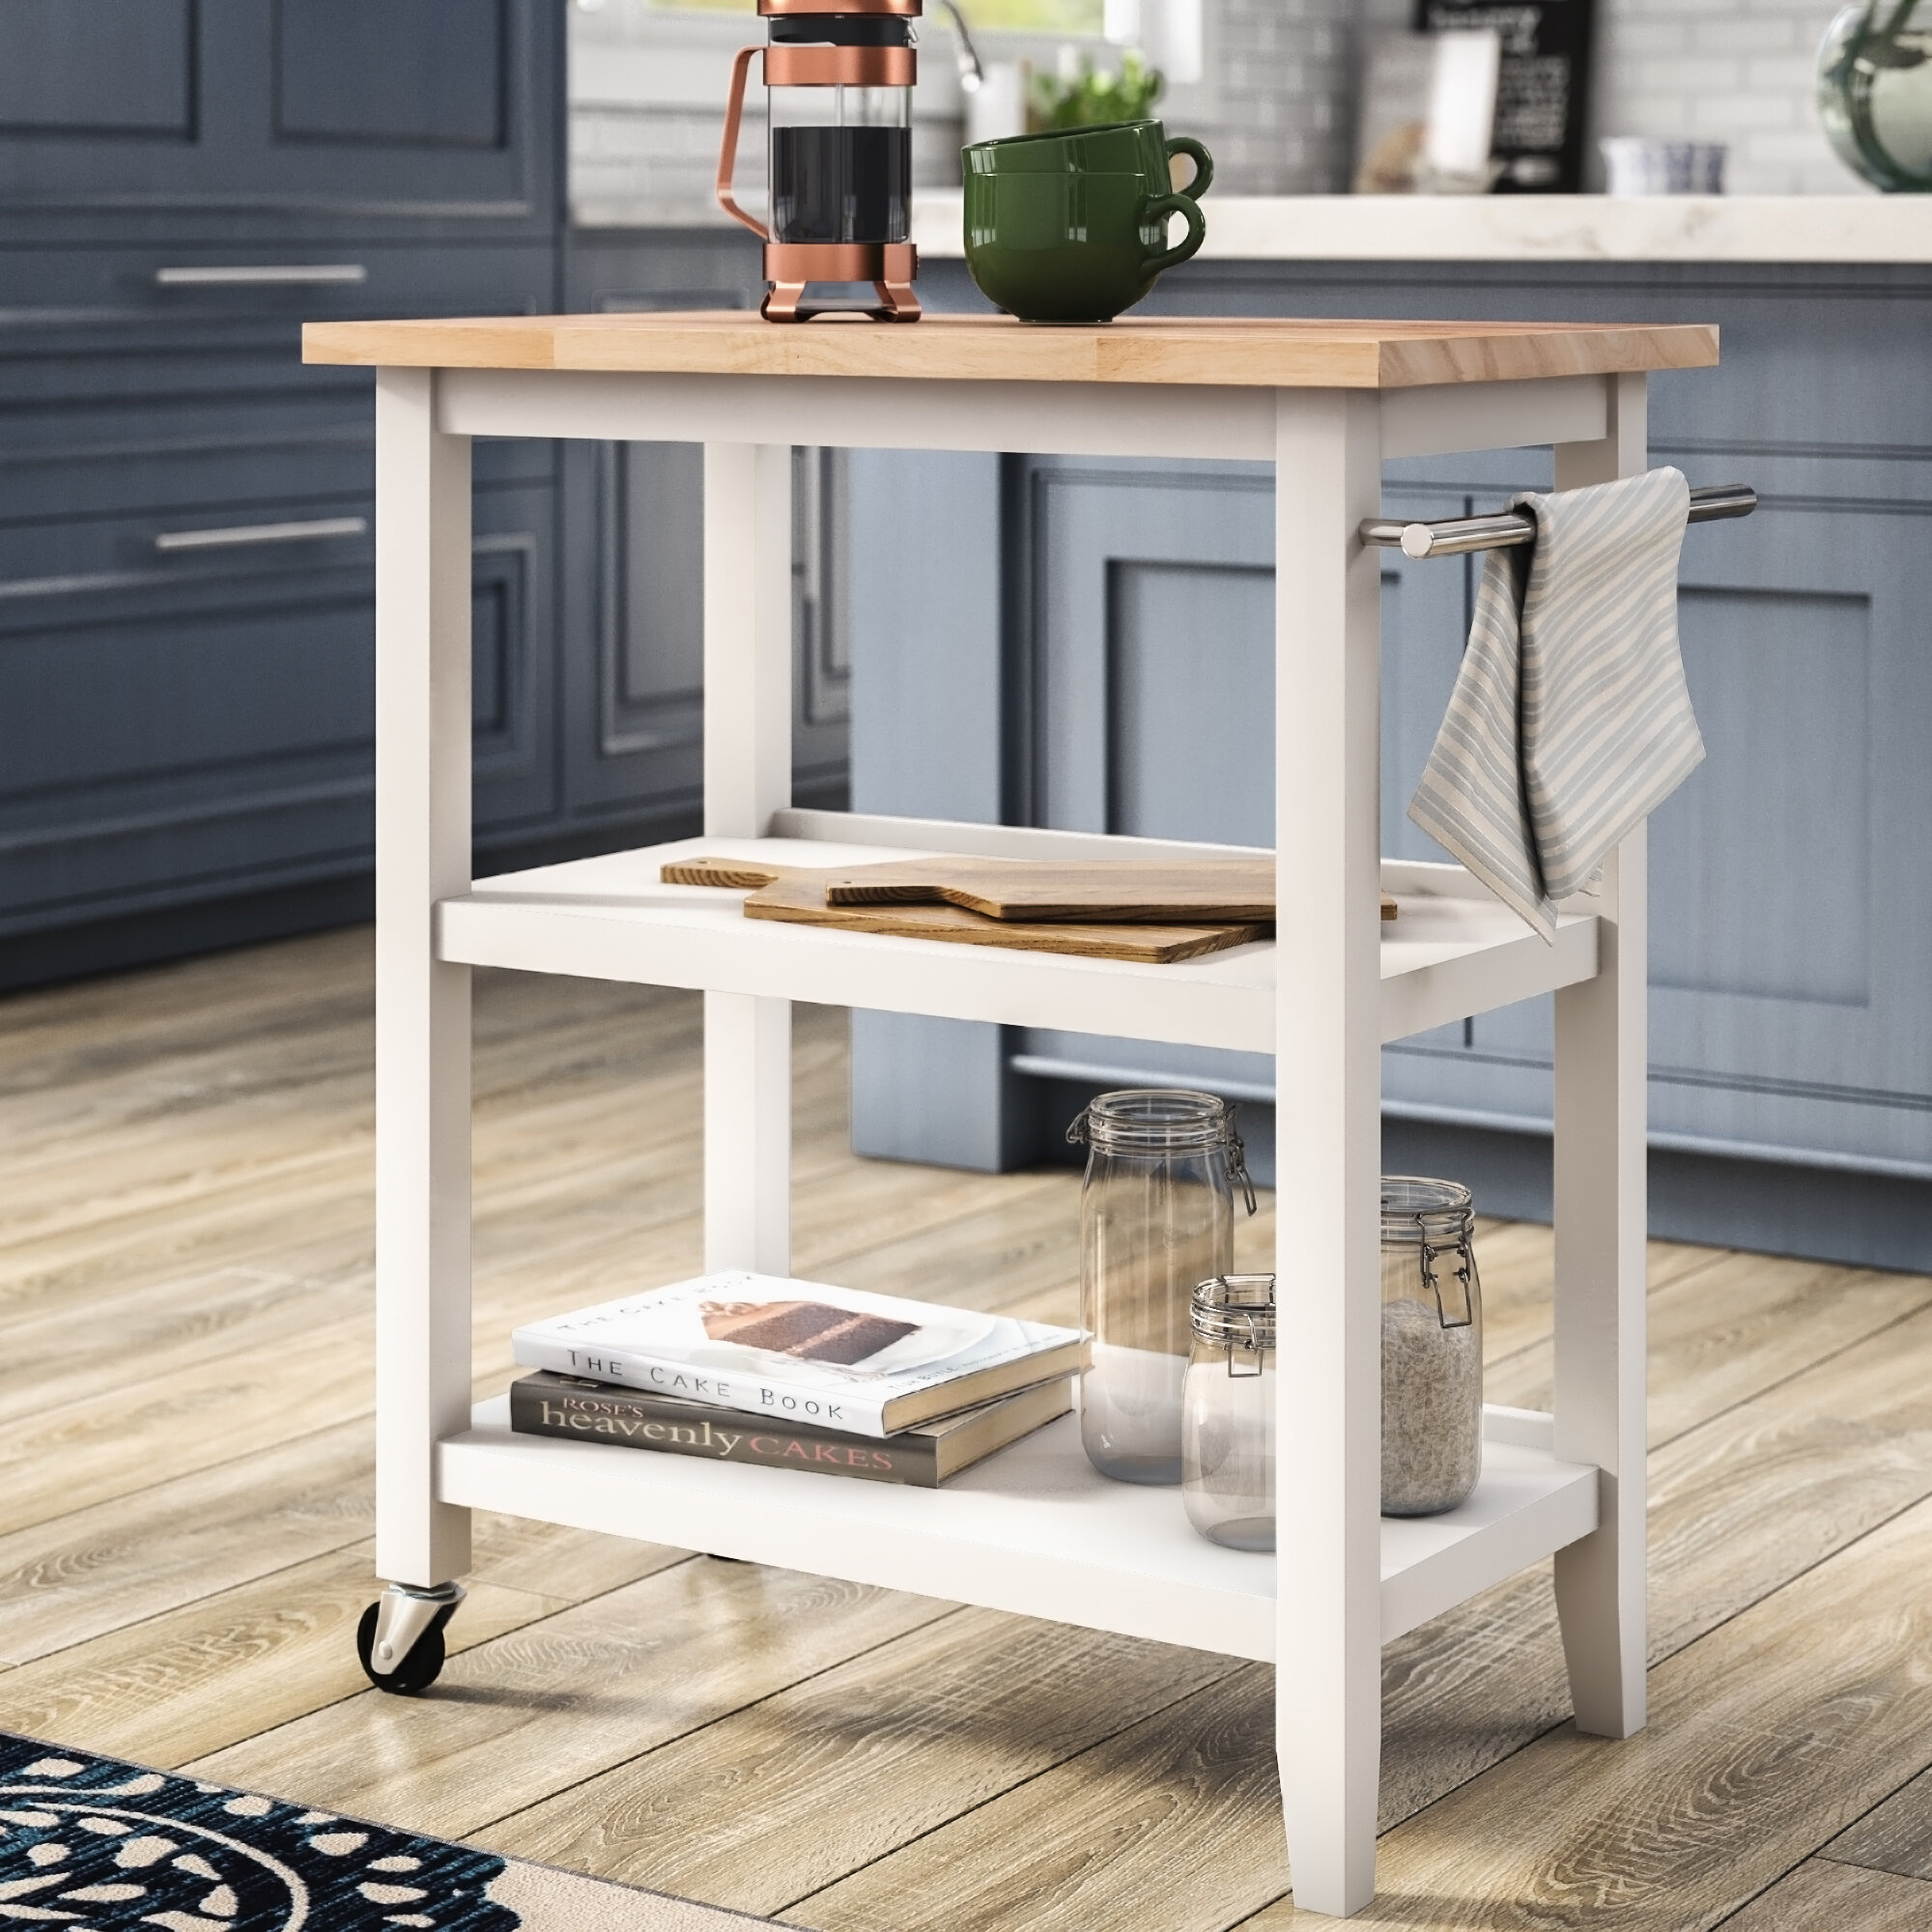 Terrific Andover Mills Raabe Kitchen Cart With Wood Top Reviews Download Free Architecture Designs Scobabritishbridgeorg